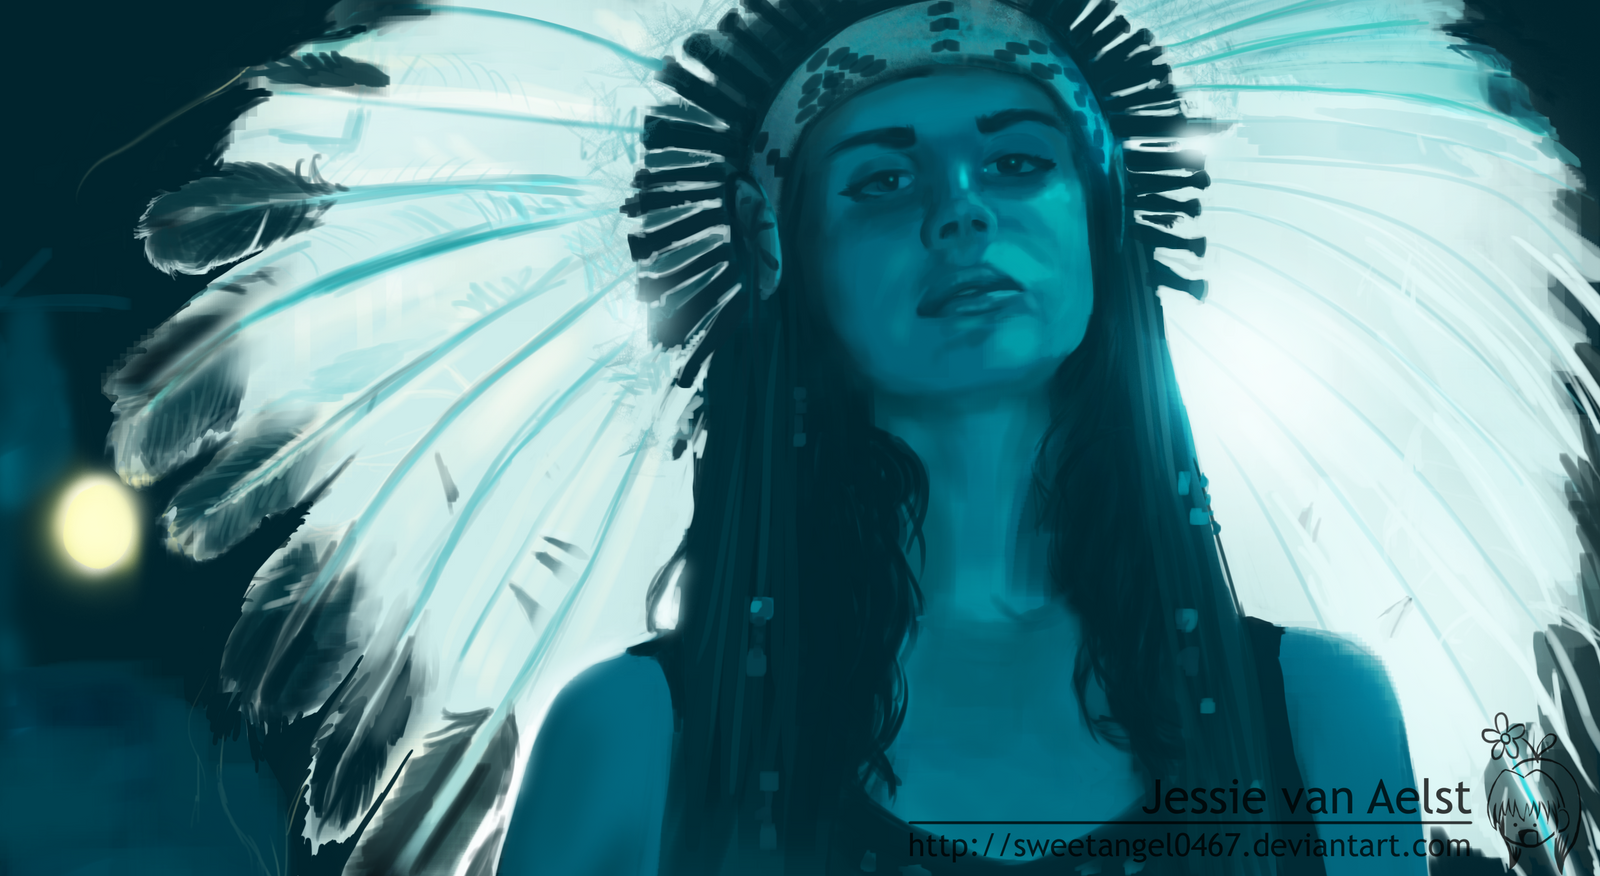 Lana Del Rey by sweetangel0467